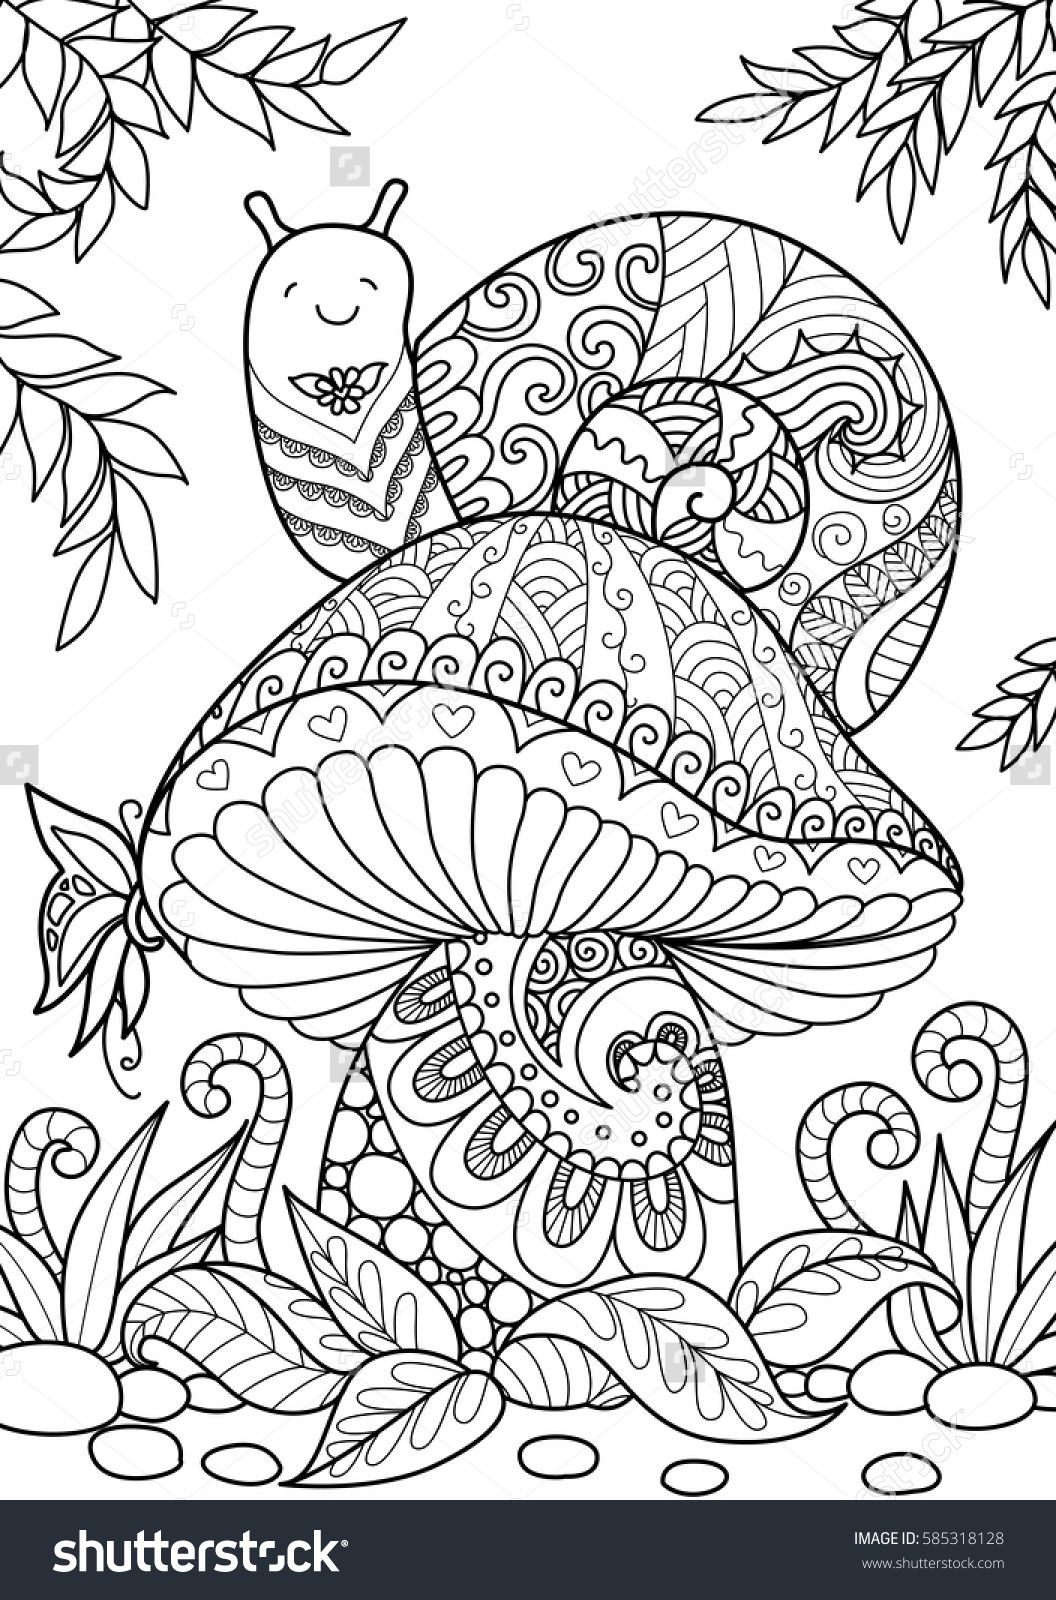 Snail Sitting On Beautiful Mushroom For T Shirt Design Tattoo And Adult Coloring Book Page Stock Vector